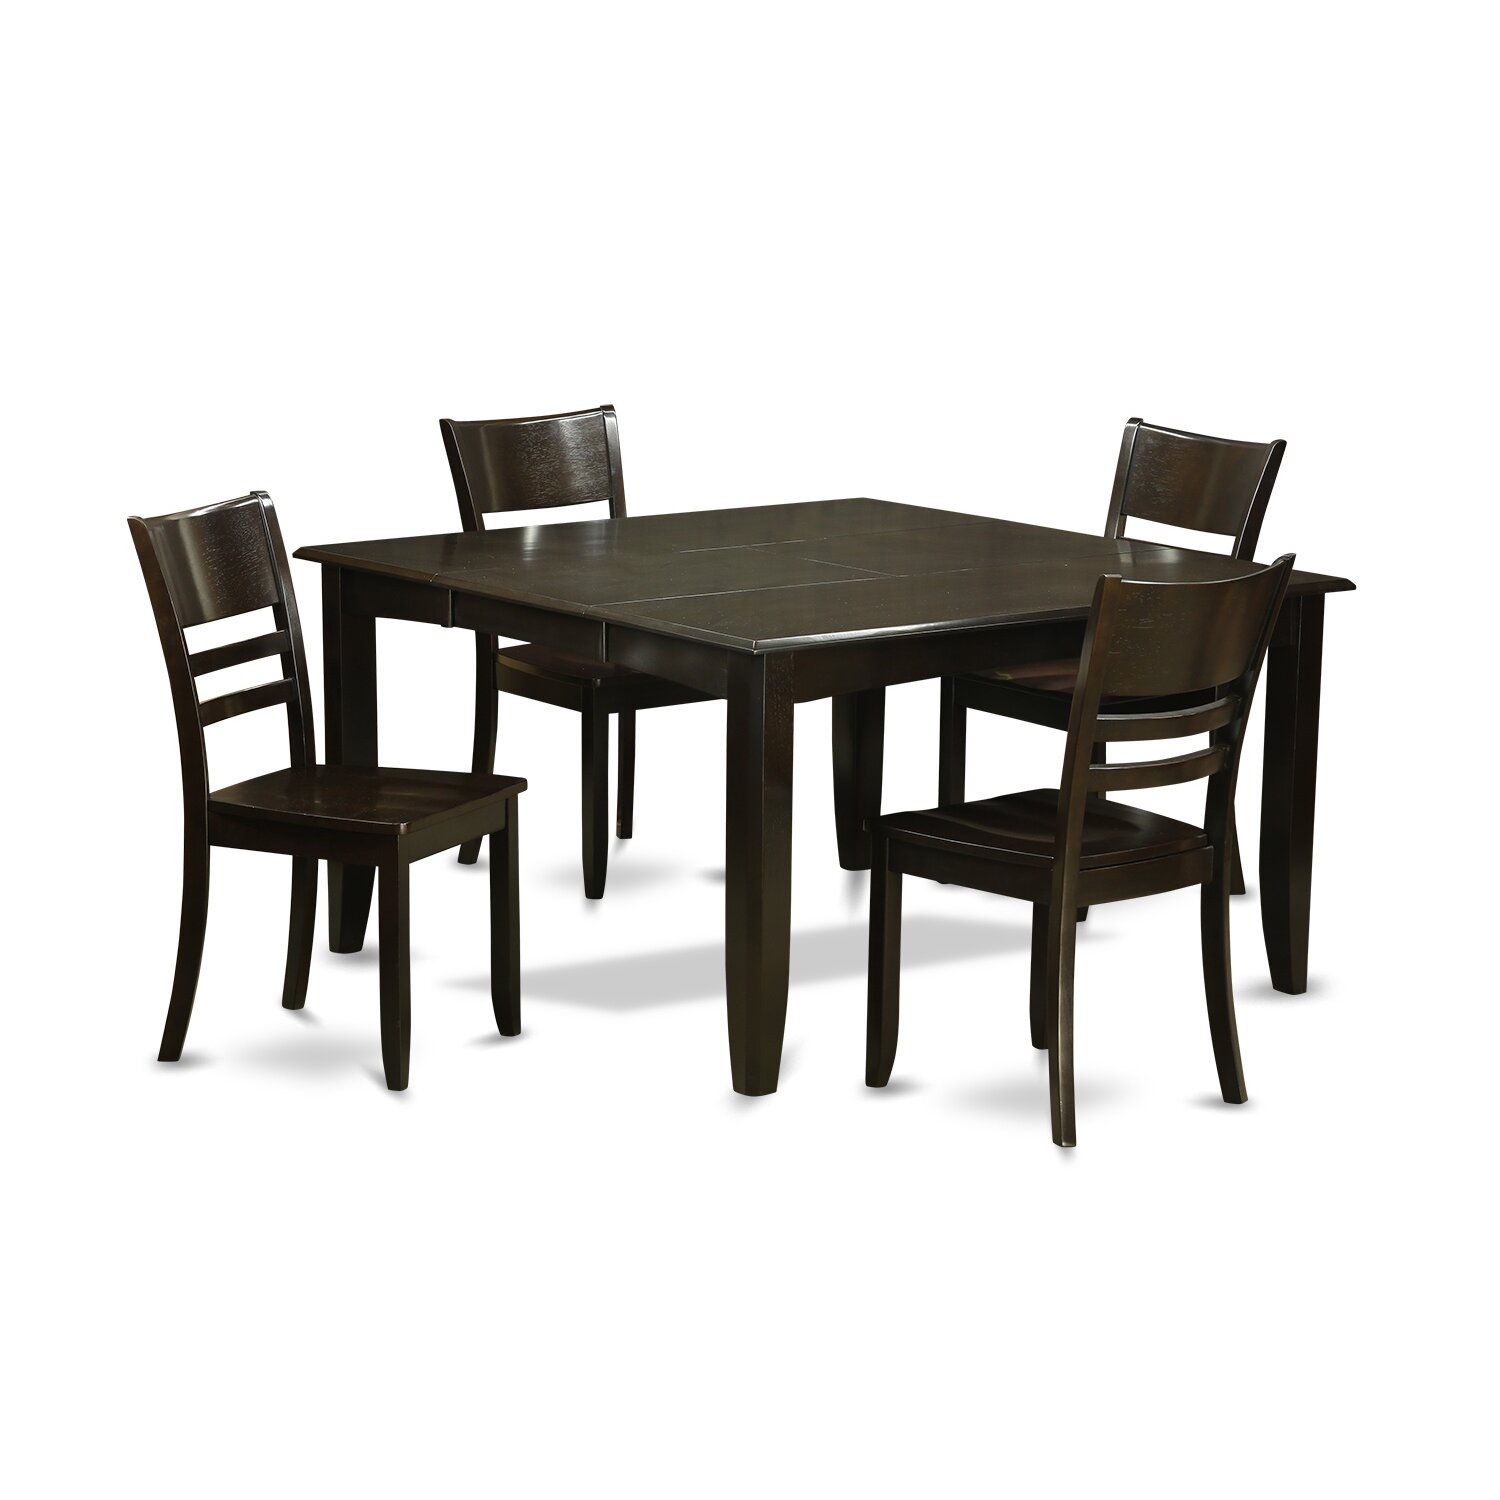 Wooden importers parfait 5 piece dining set wayfair for Breakfast sets furniture